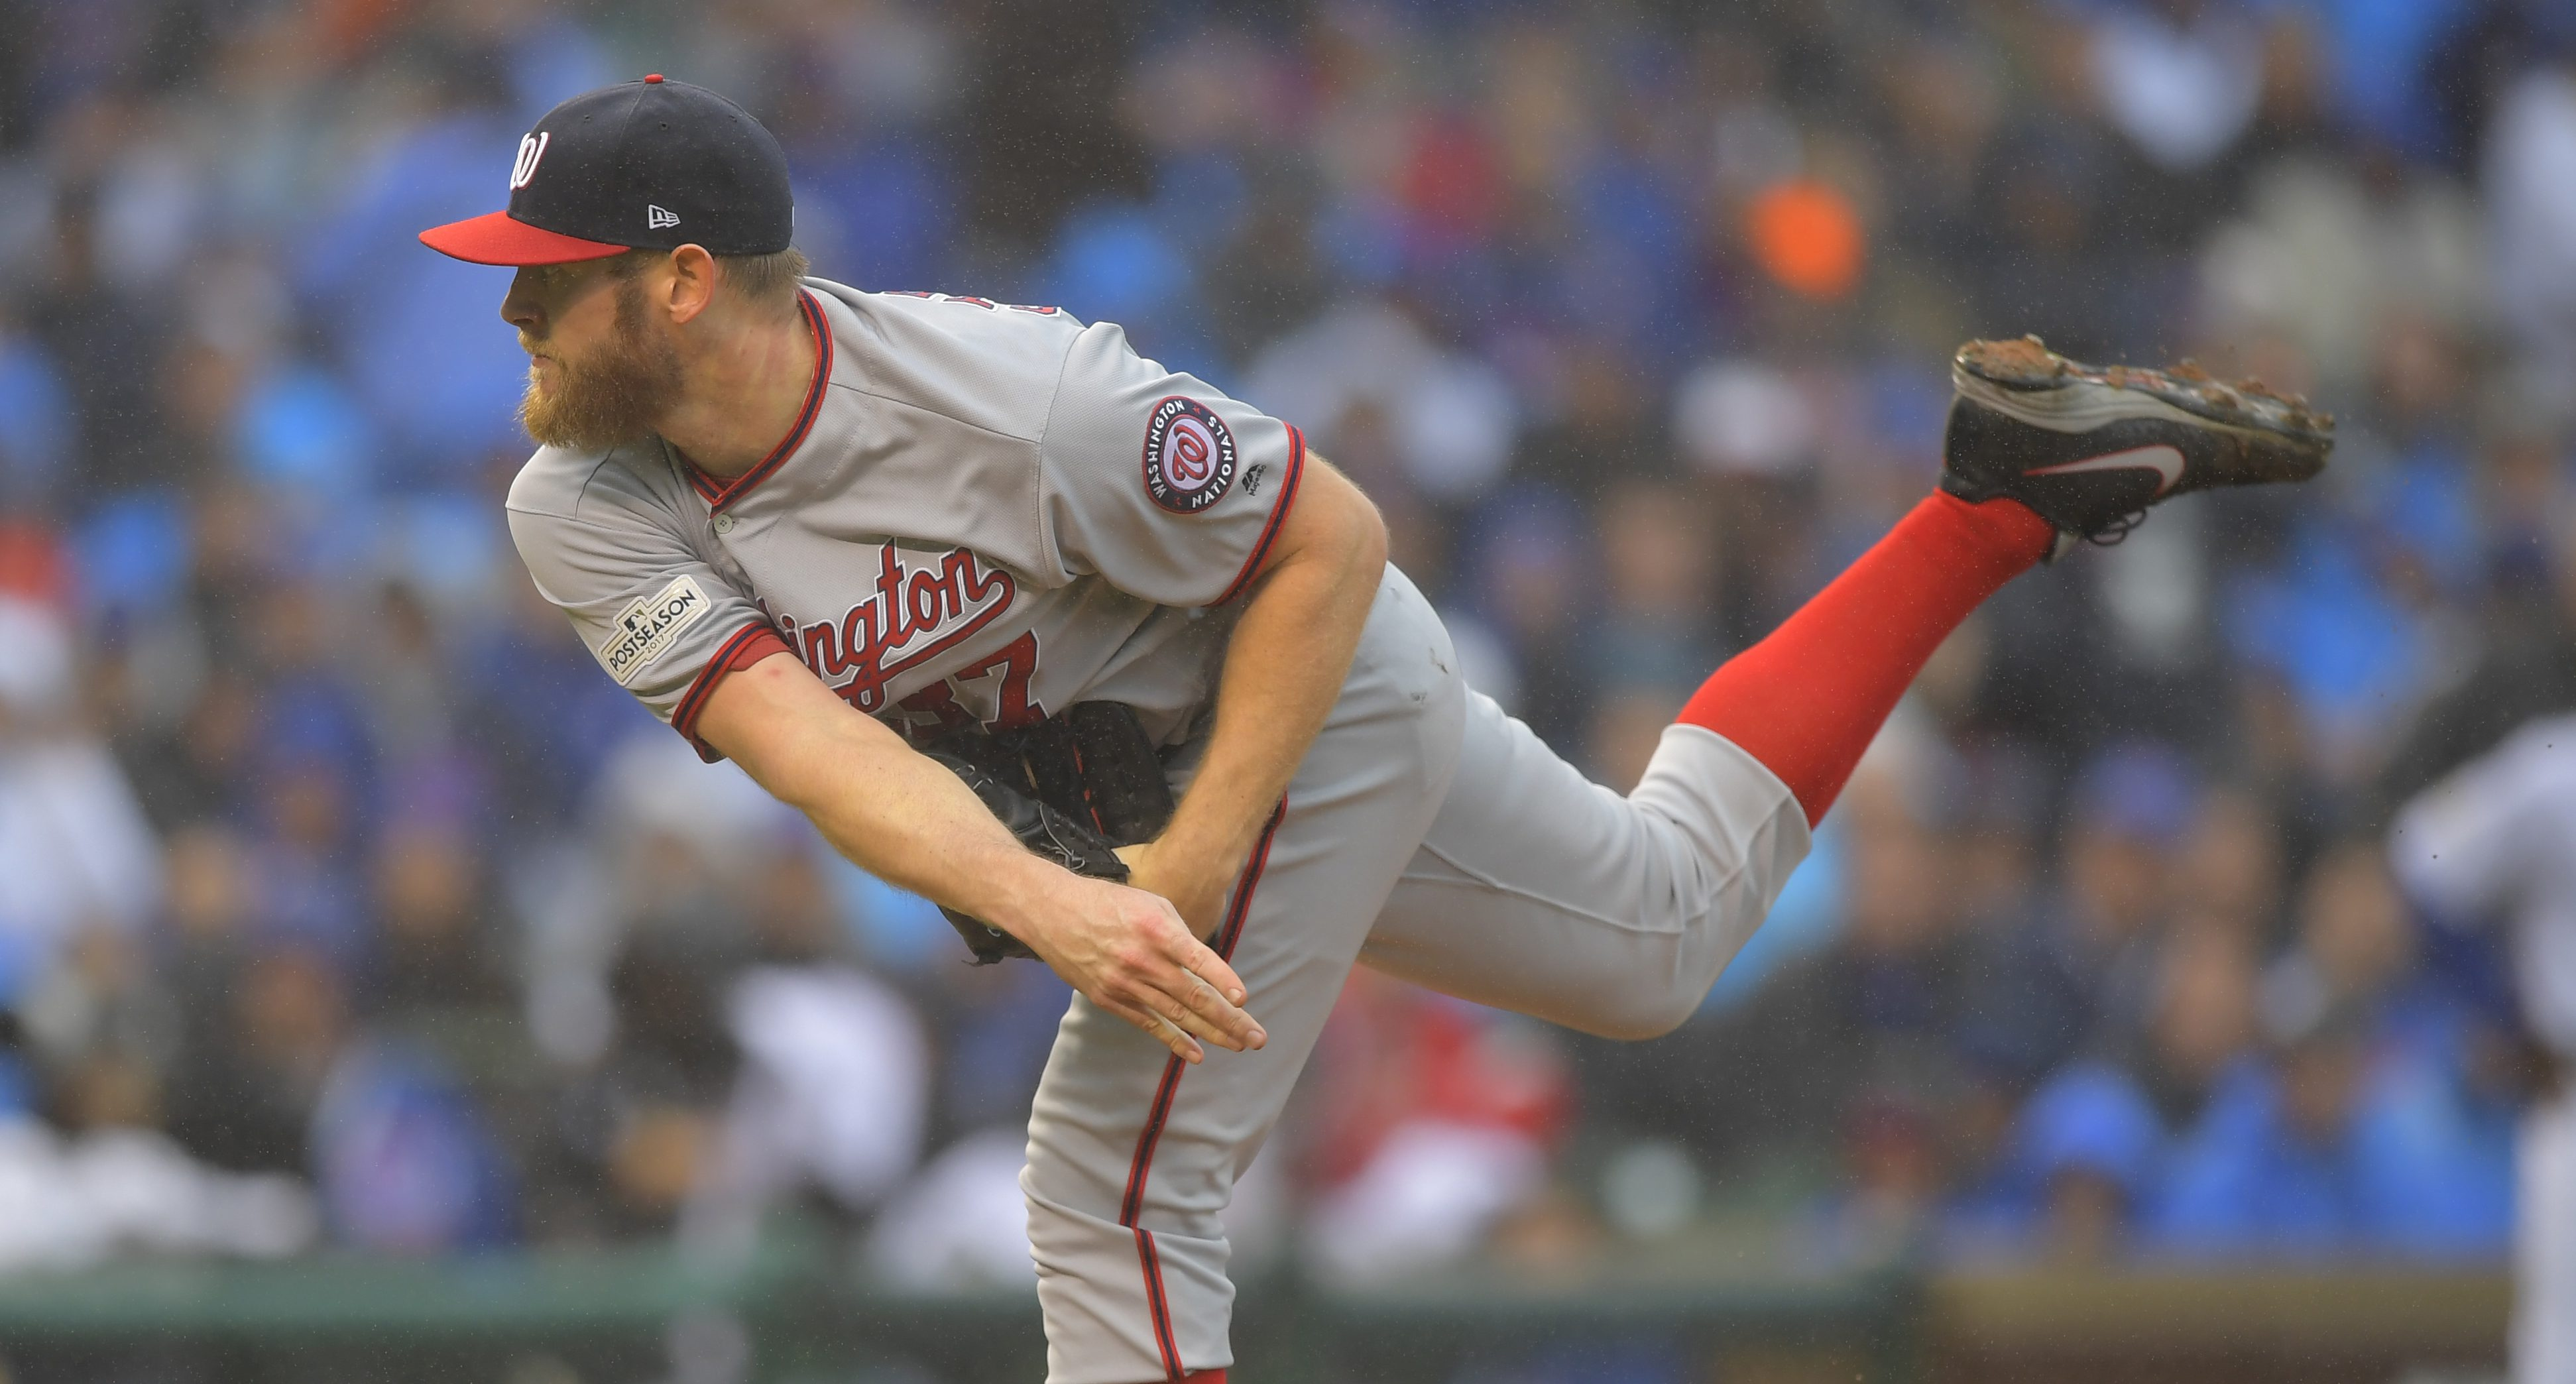 The Washington Nationals play the Chicago Cubs in game 4